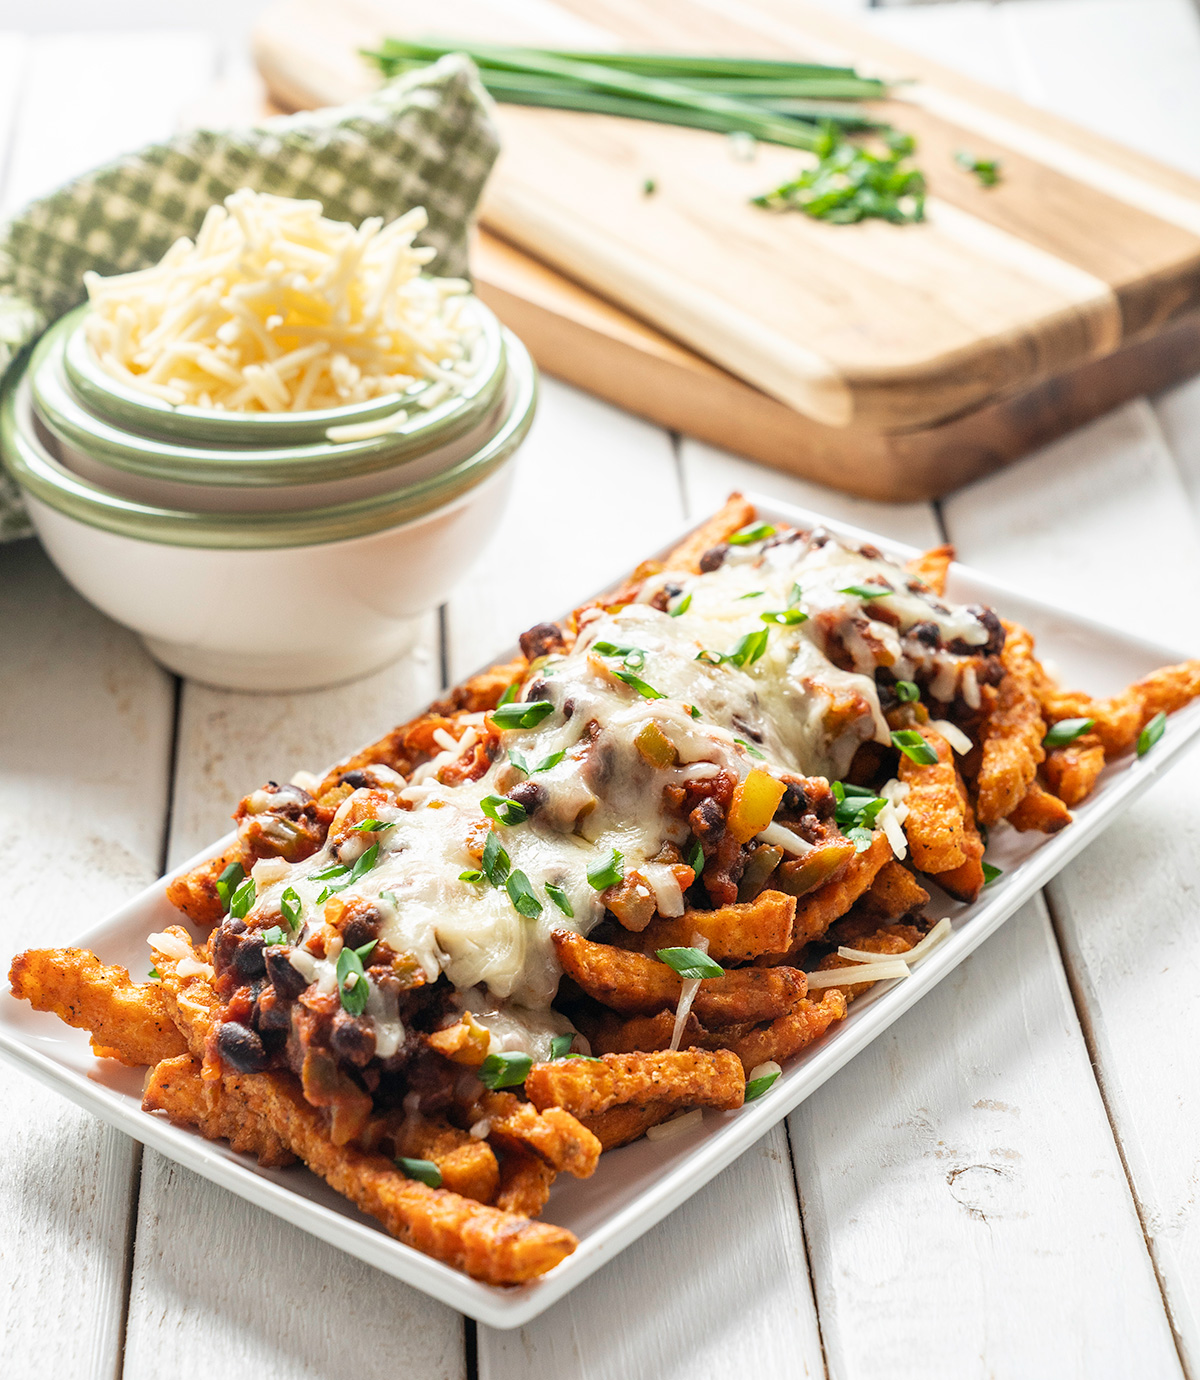 Vegetarian-Chili-Cheese-Fries-Healthy